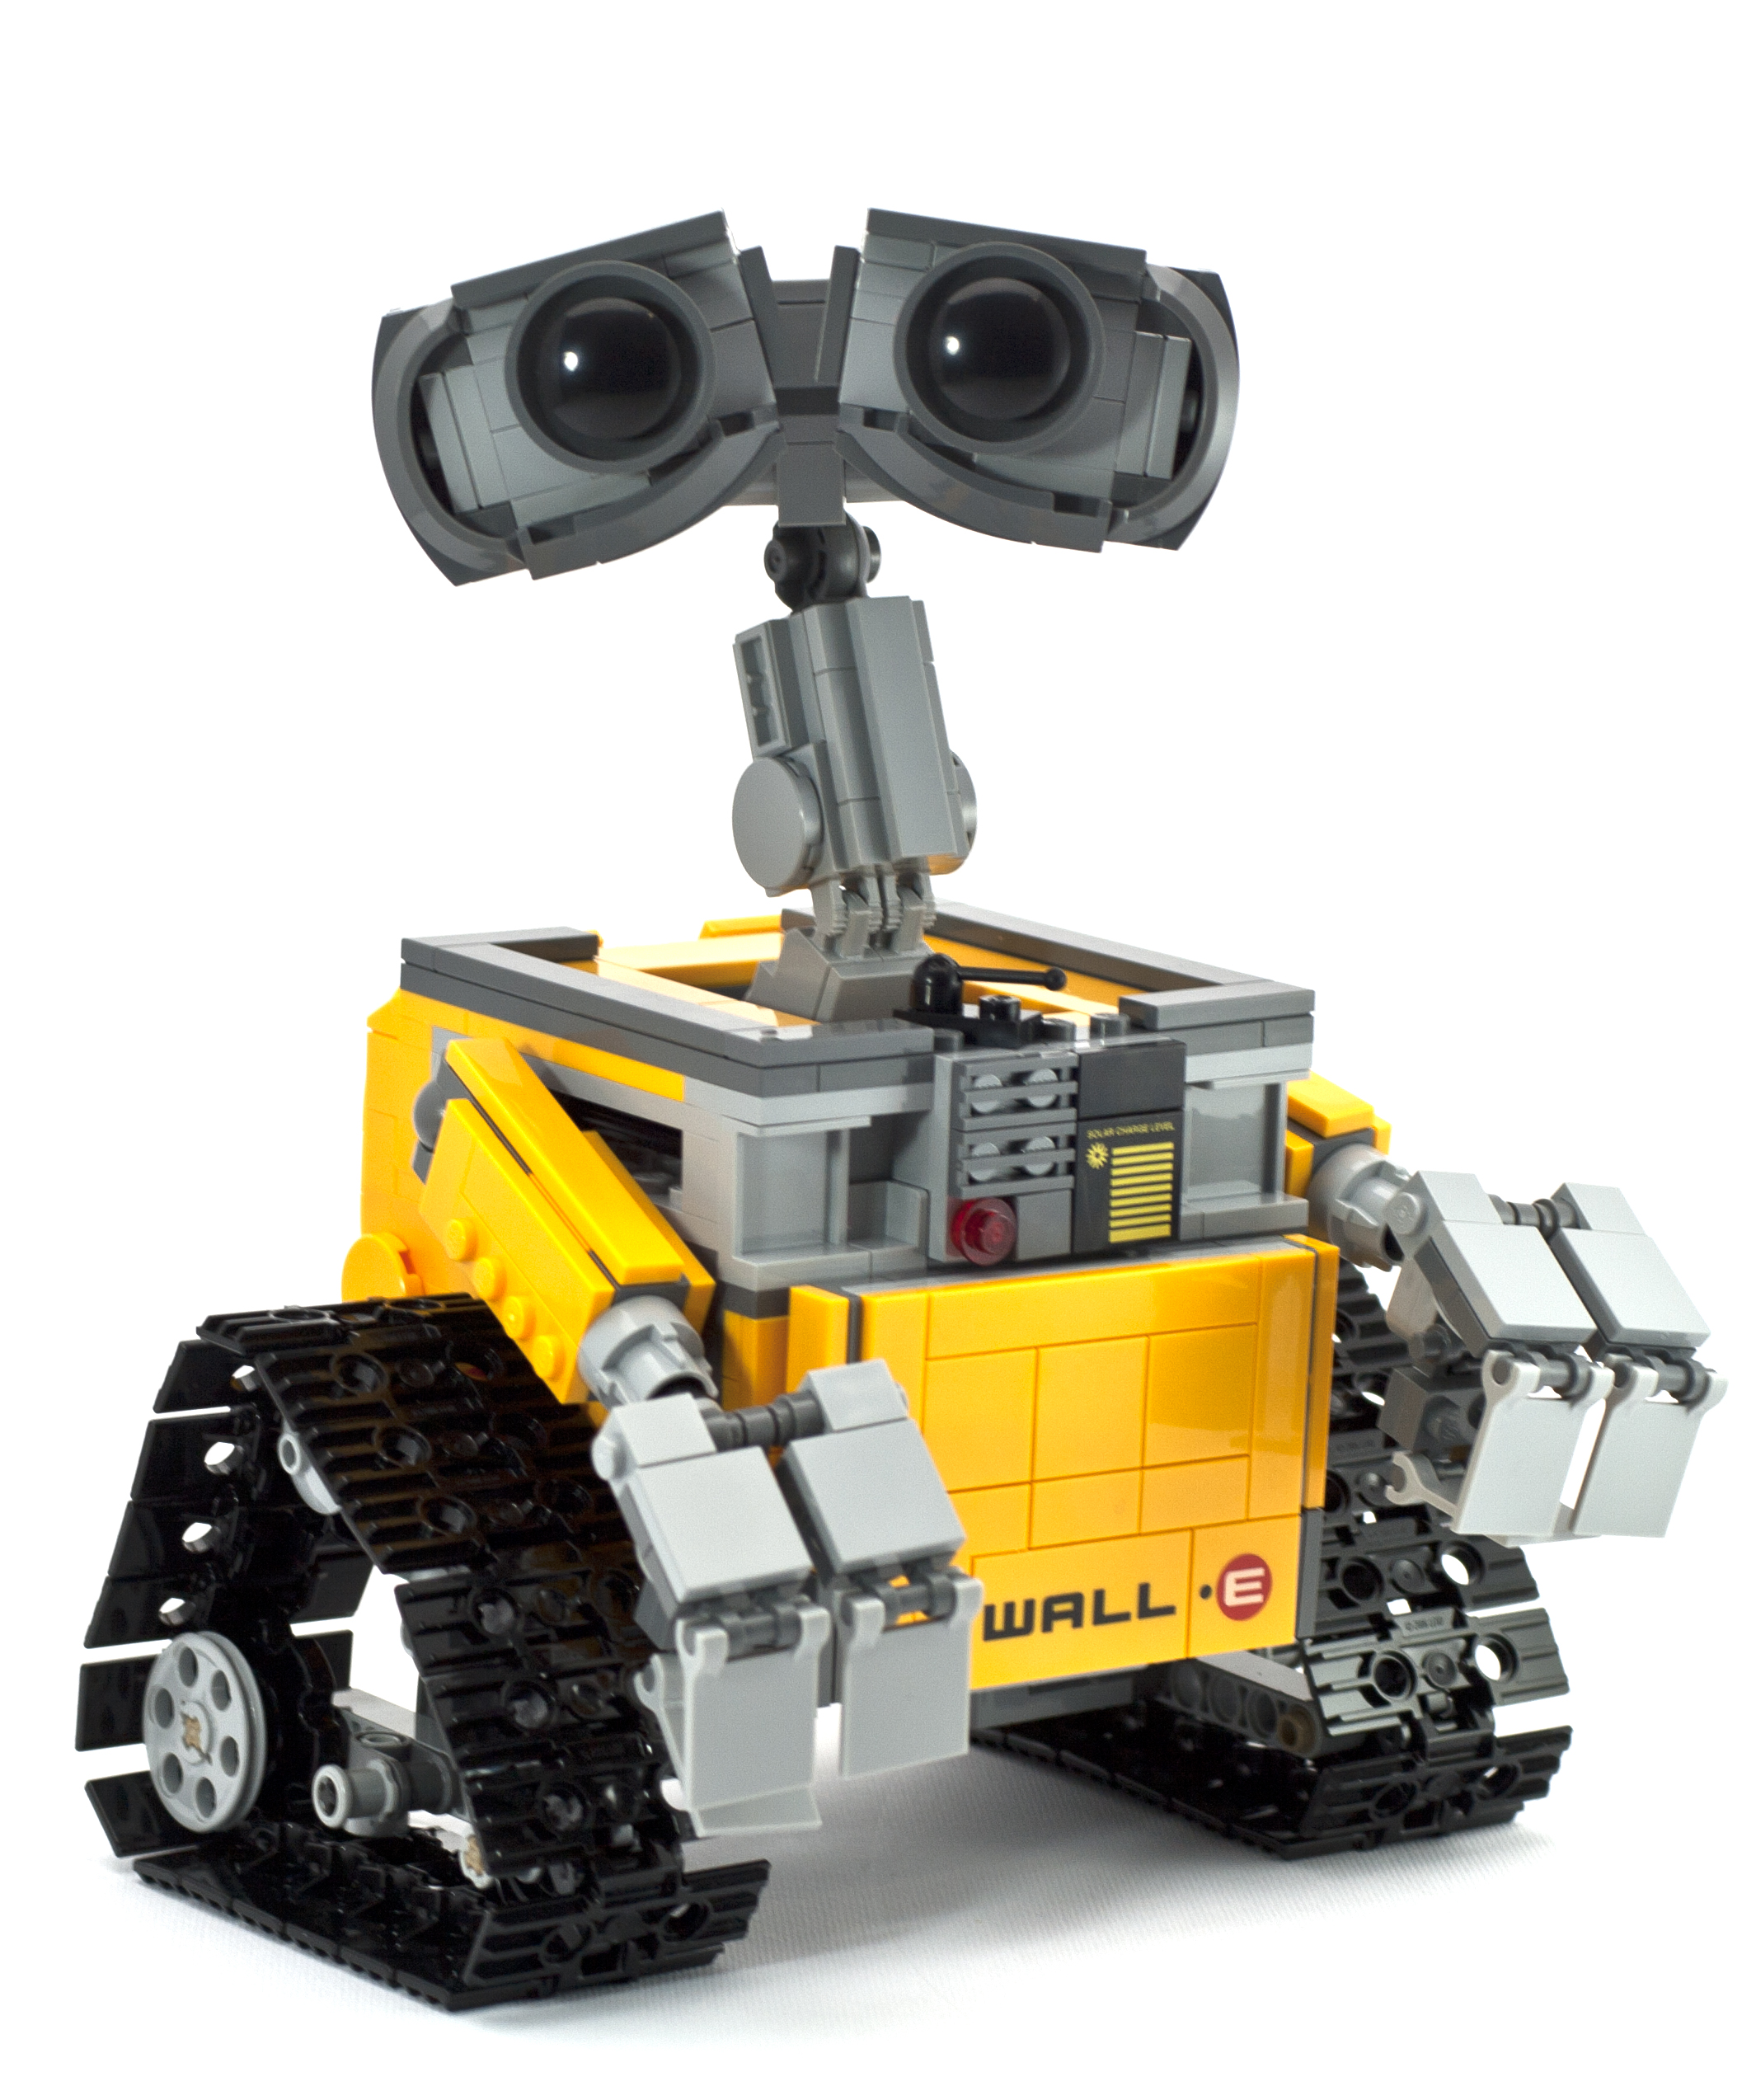 review 21303 wall e rebrickable build with lego. Black Bedroom Furniture Sets. Home Design Ideas